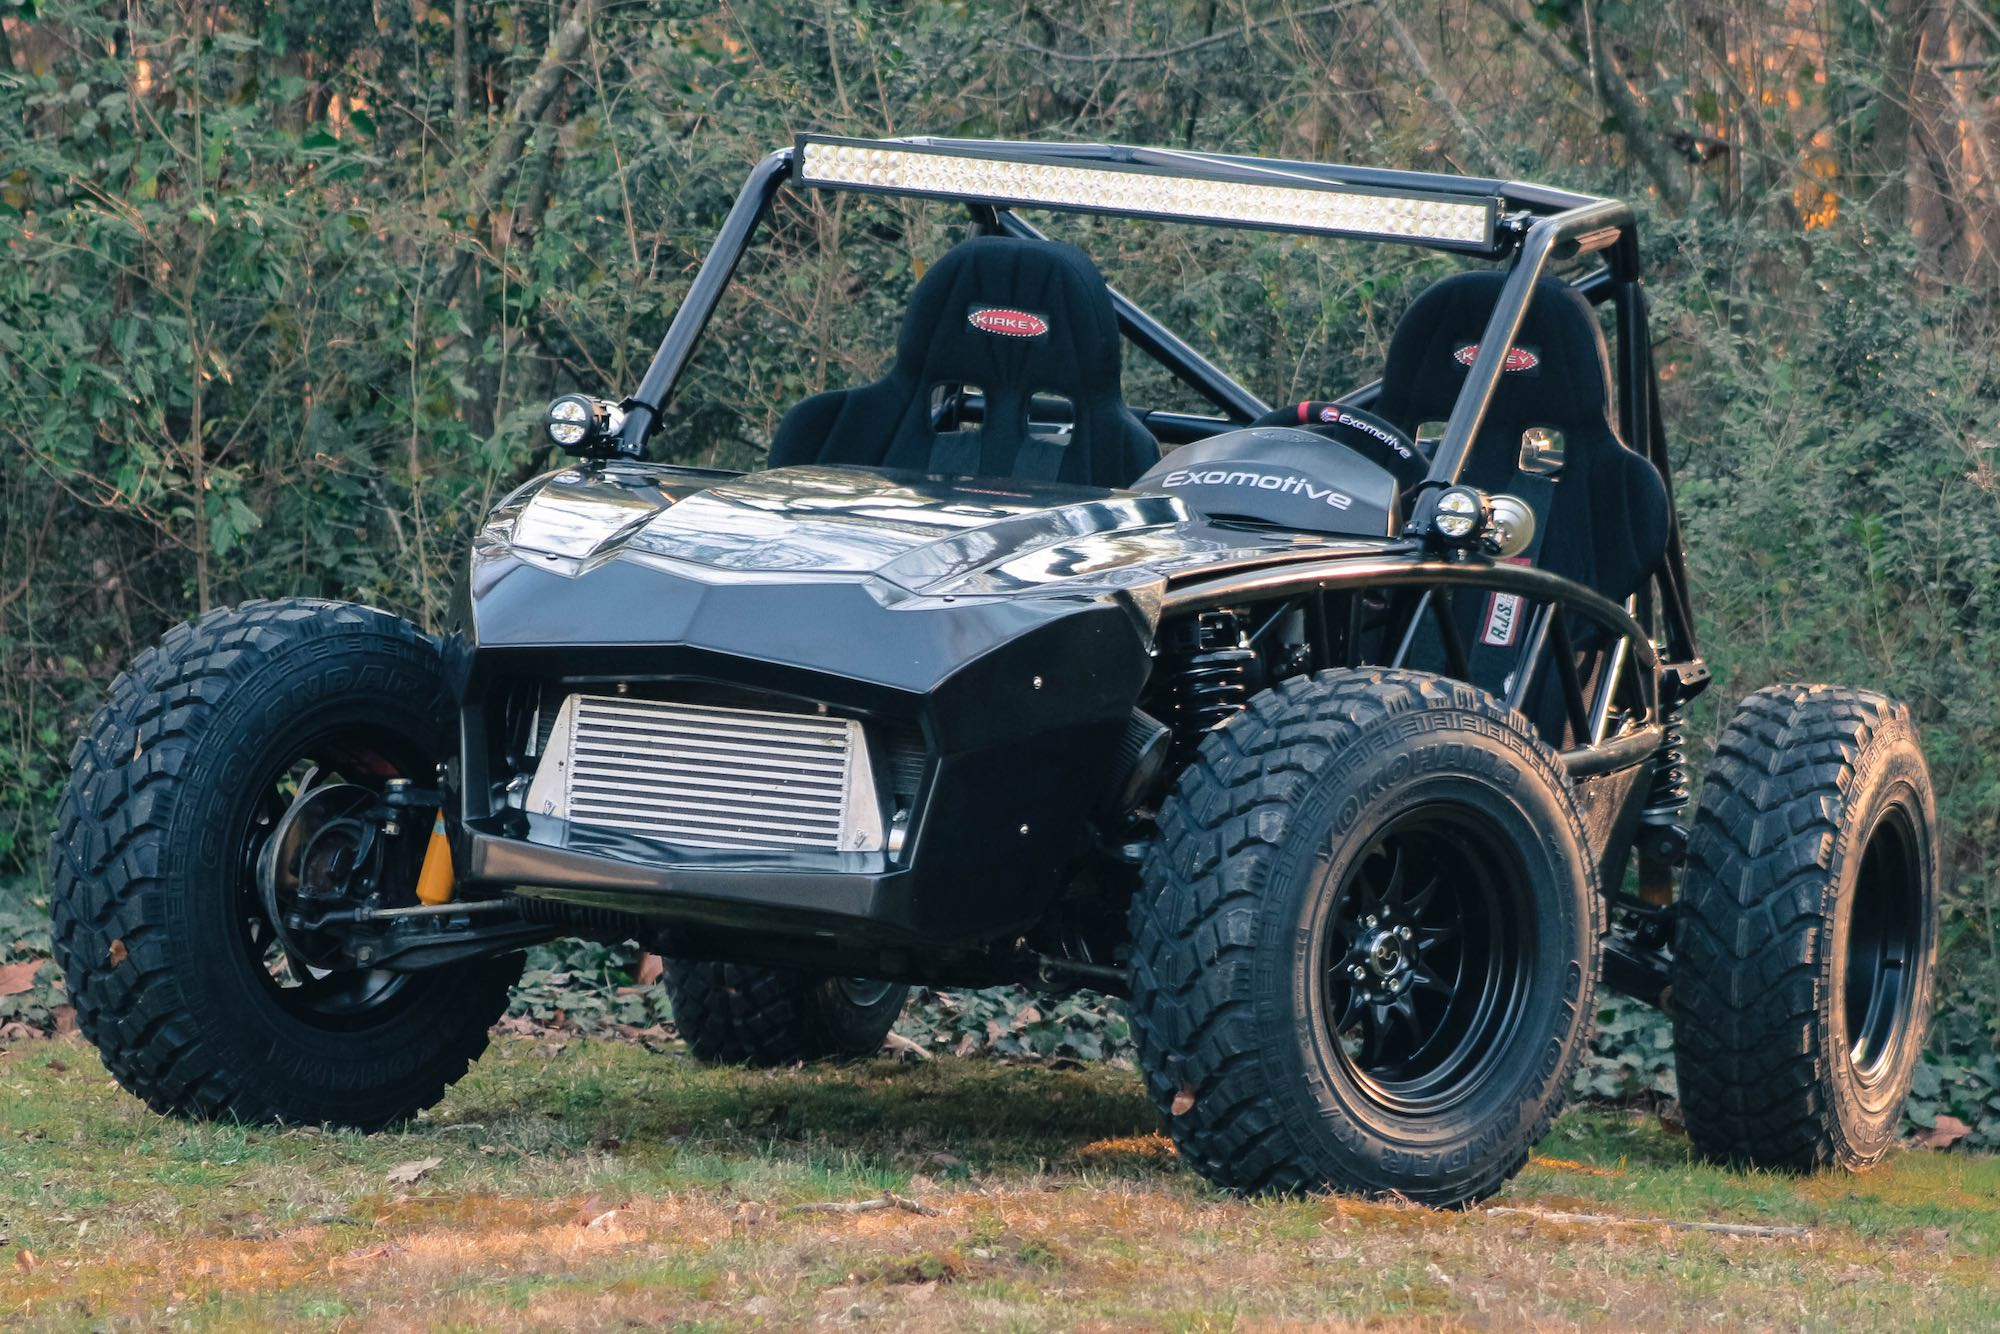 Exocet-Off-Road-Grass.jpg